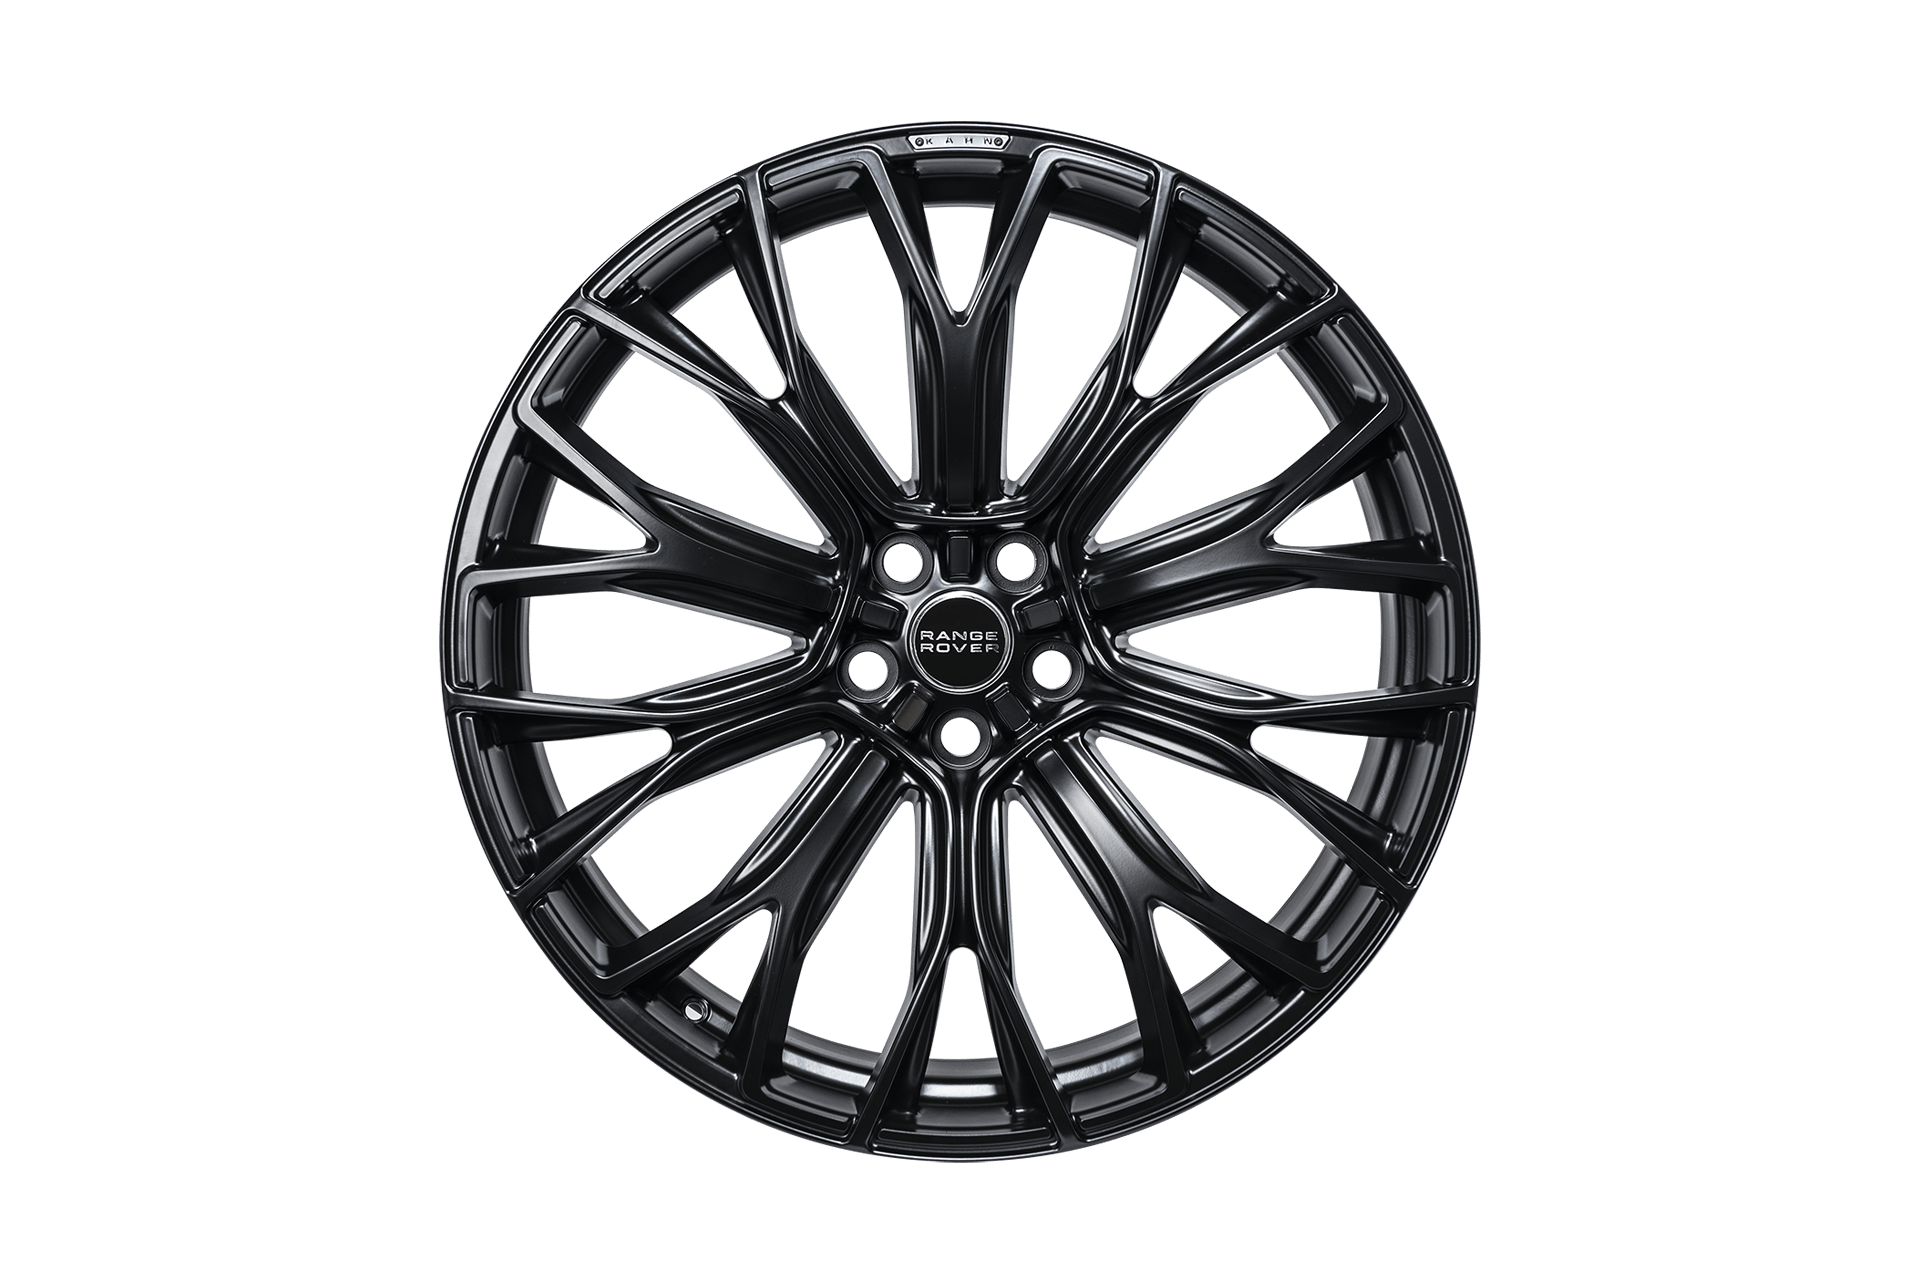 Range Rover (2018-Present) Type 25 Rs-Forged Alloy Wheels by Kahn - Image 2606